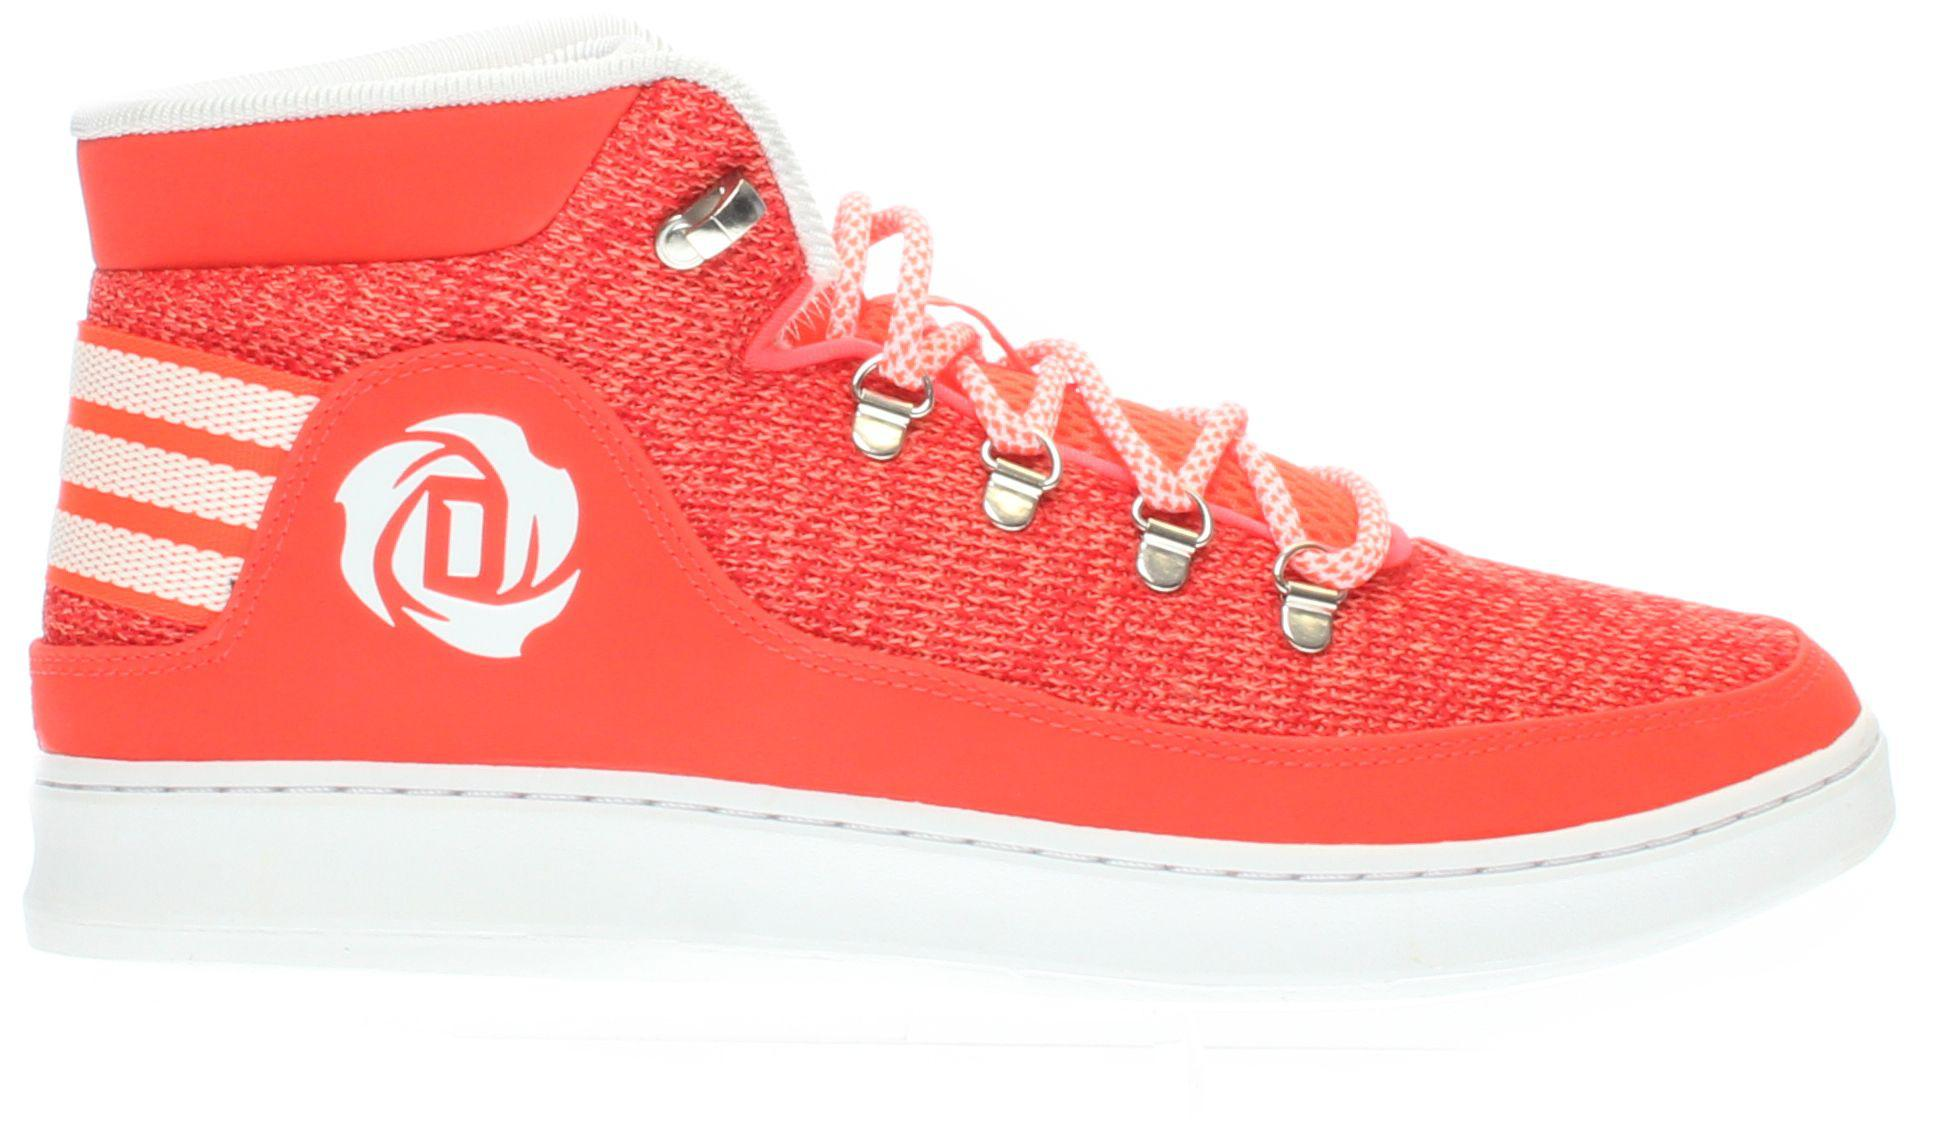 2adidas d rose lakeshore mid